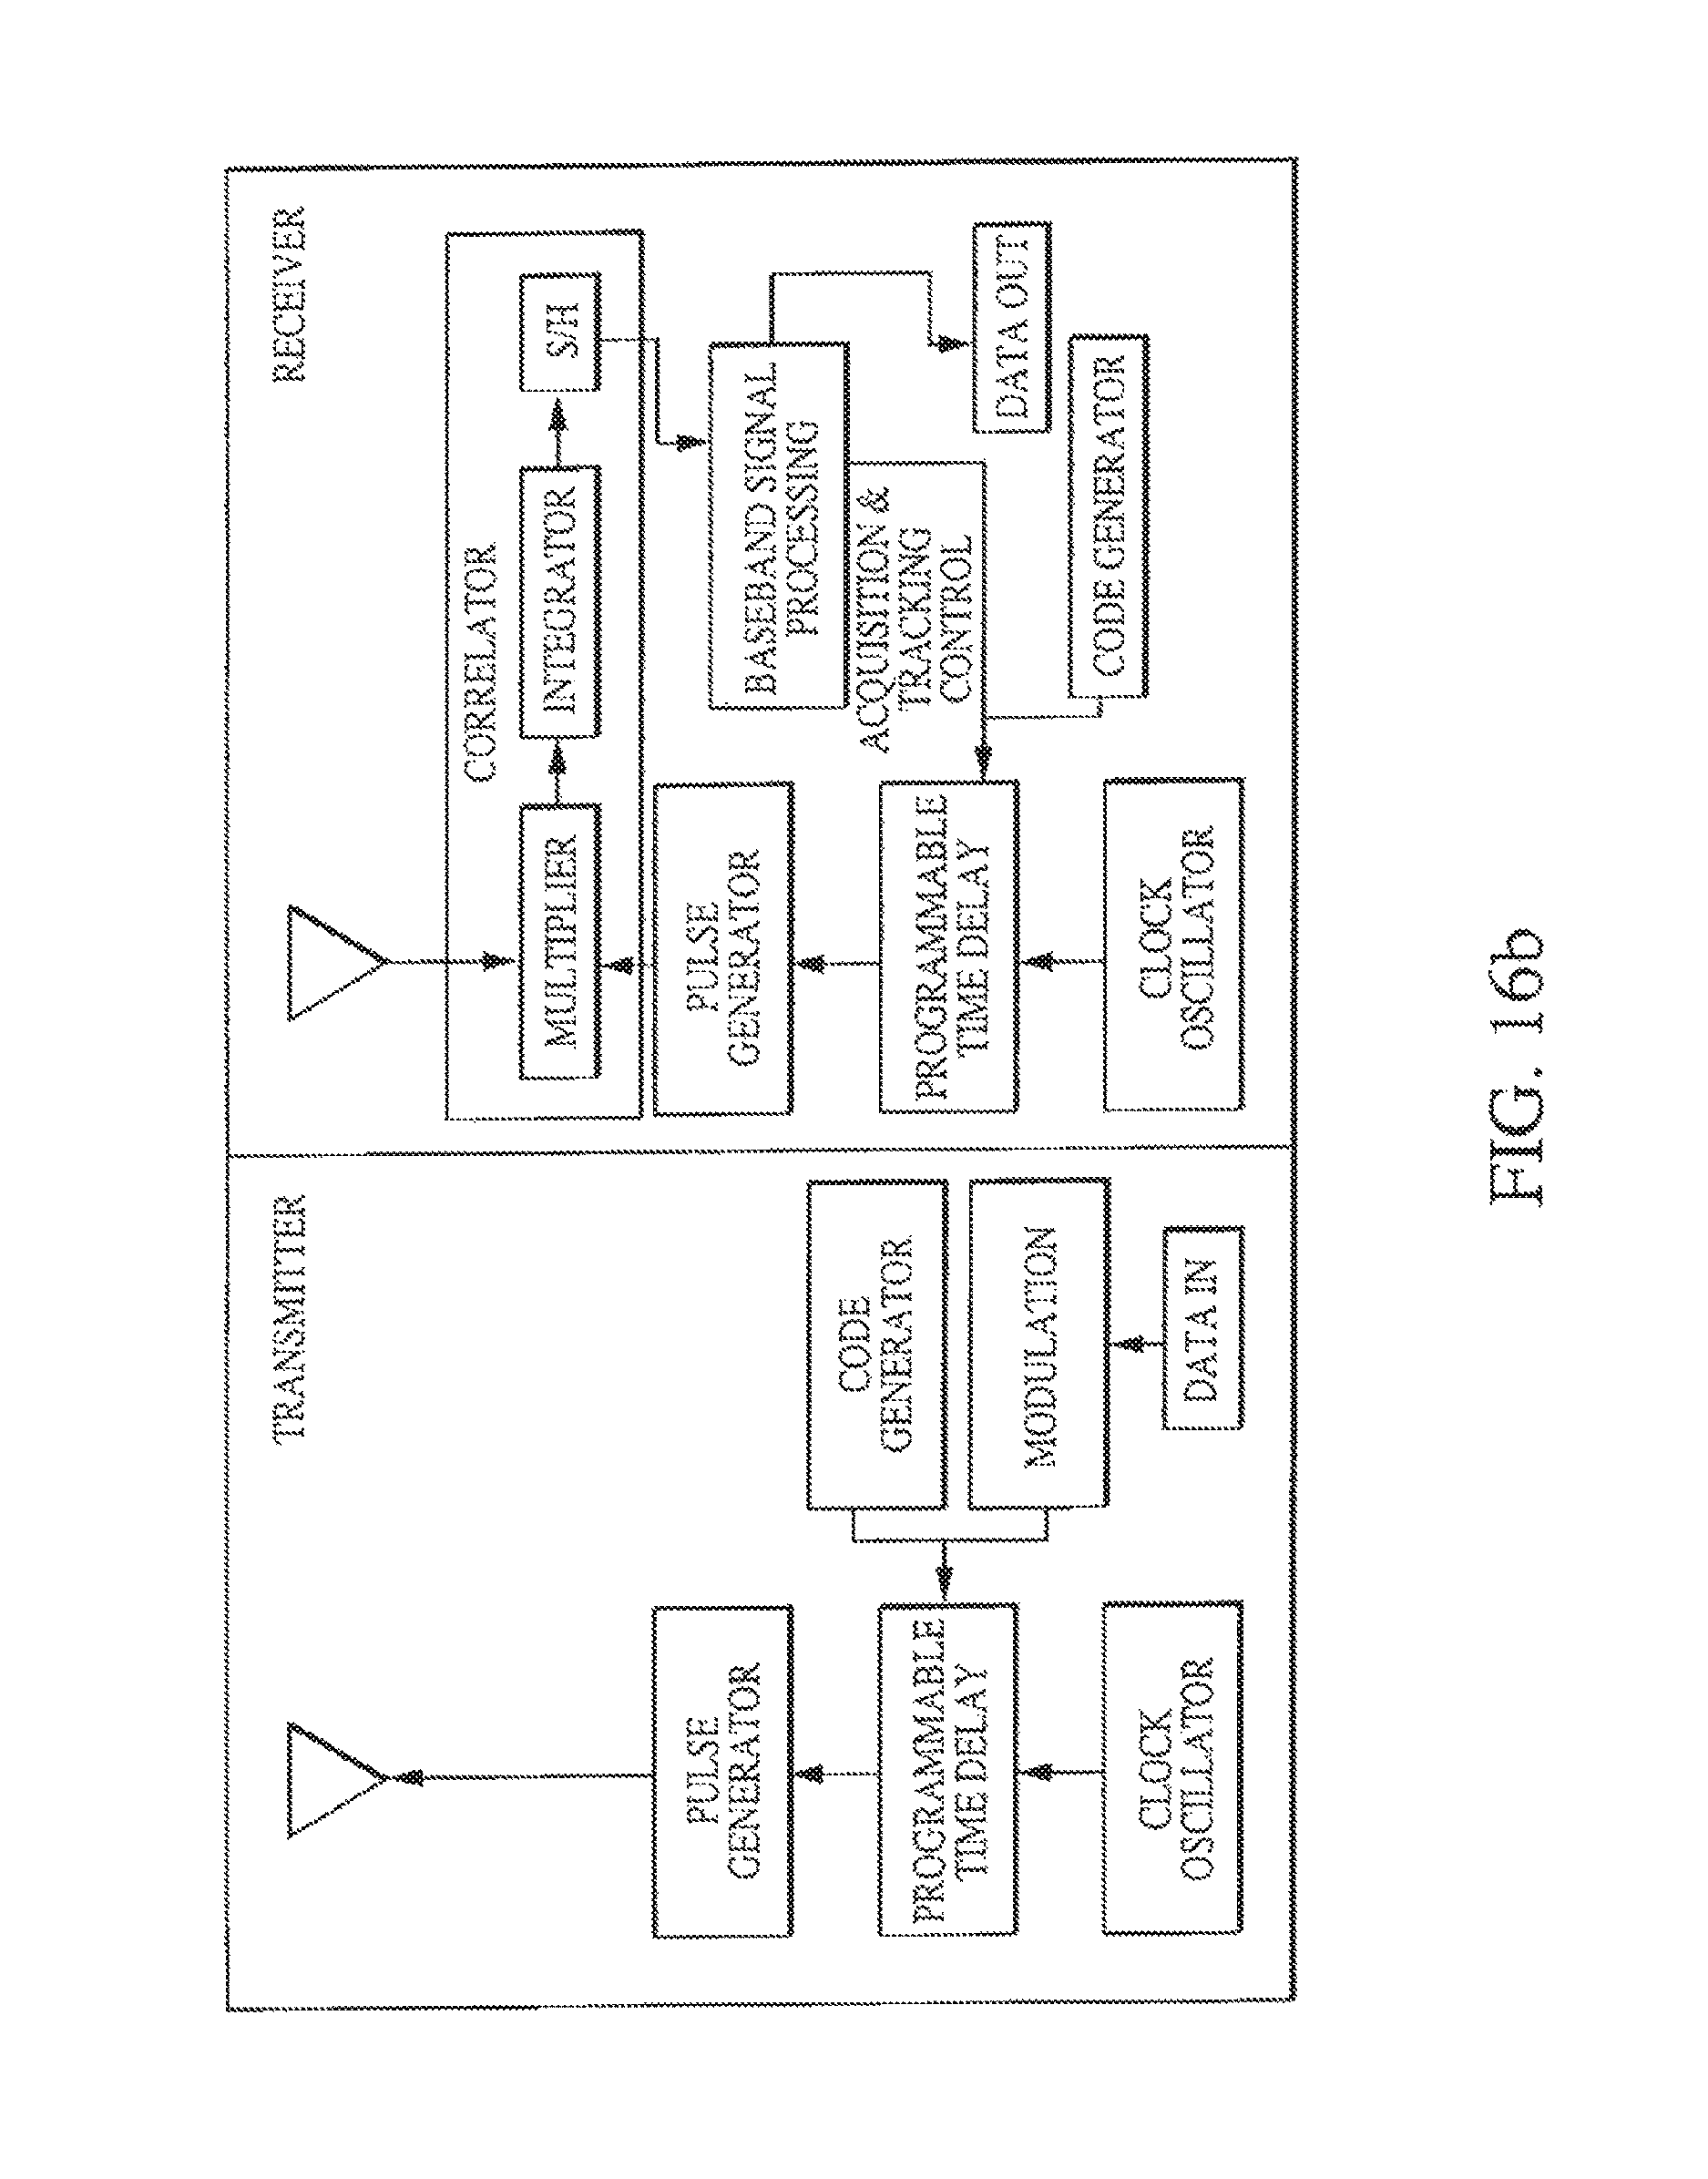 Patent Us 9913575 B2 Circuit Which Allows Forward And Reverse Motion With The Flip Of A Images